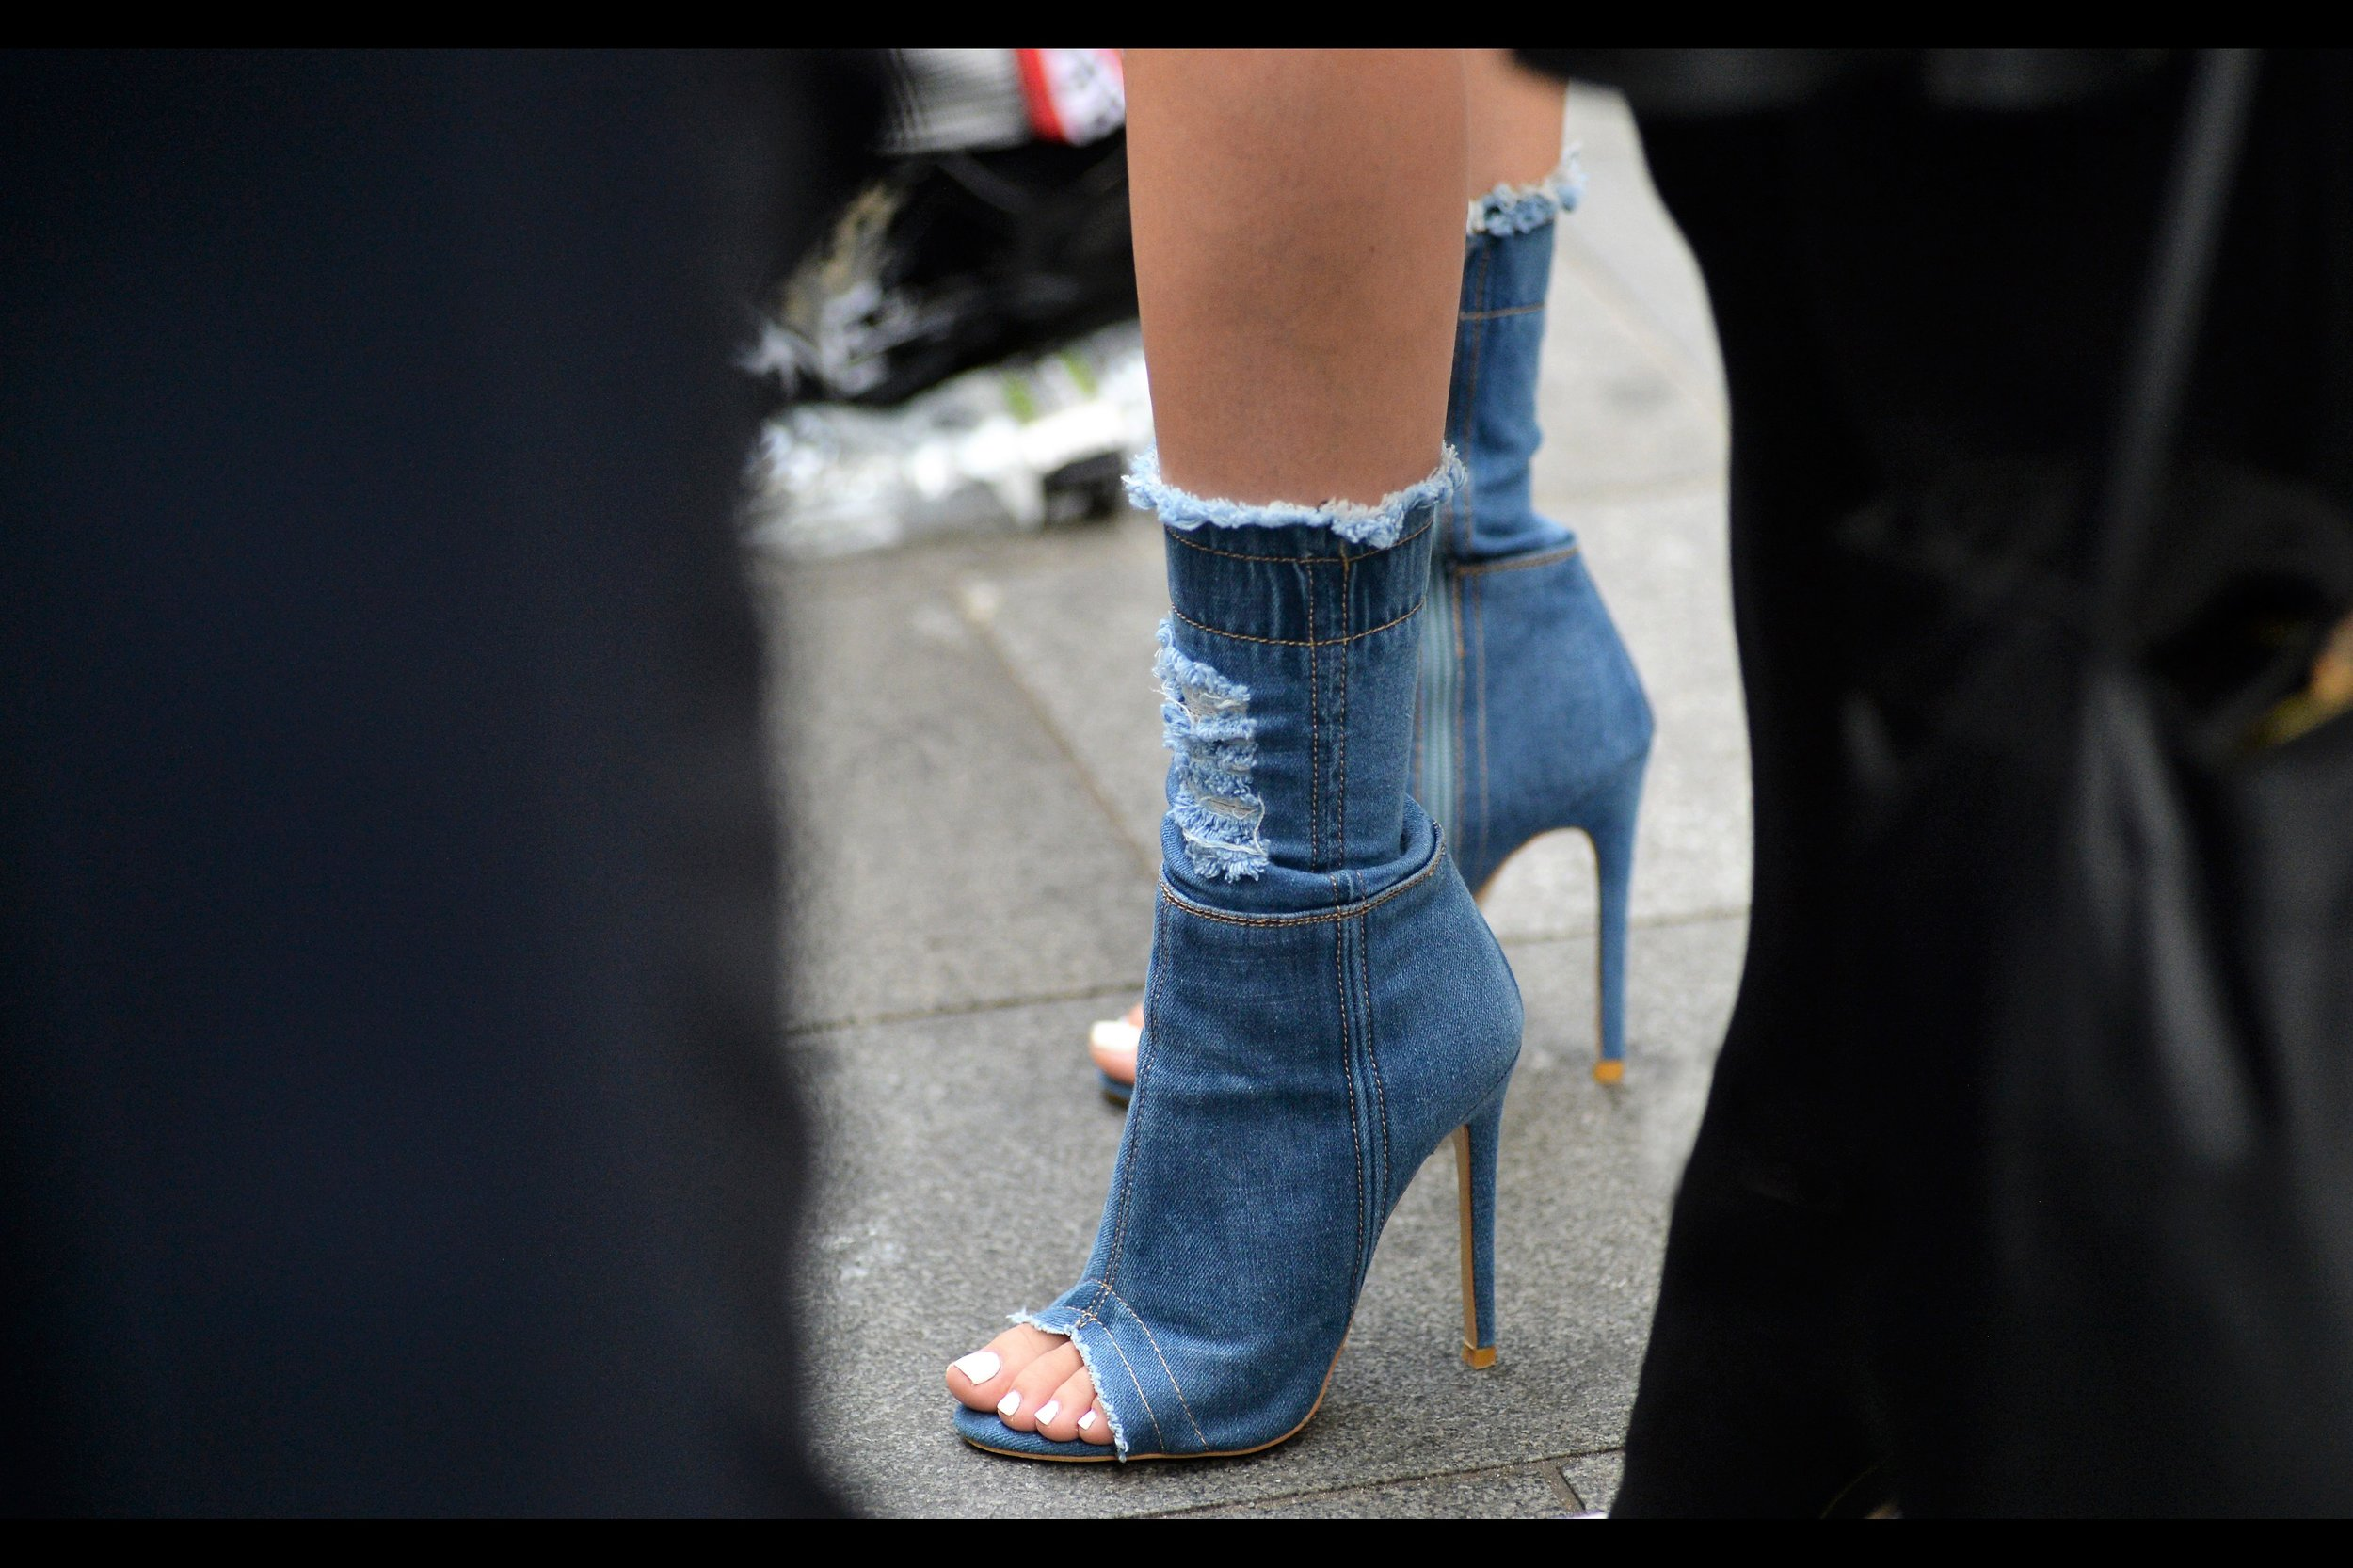 And        London Fashion Week    is still too recent for me not to take, and then post, this photo. (Plus if I don't… who will?)